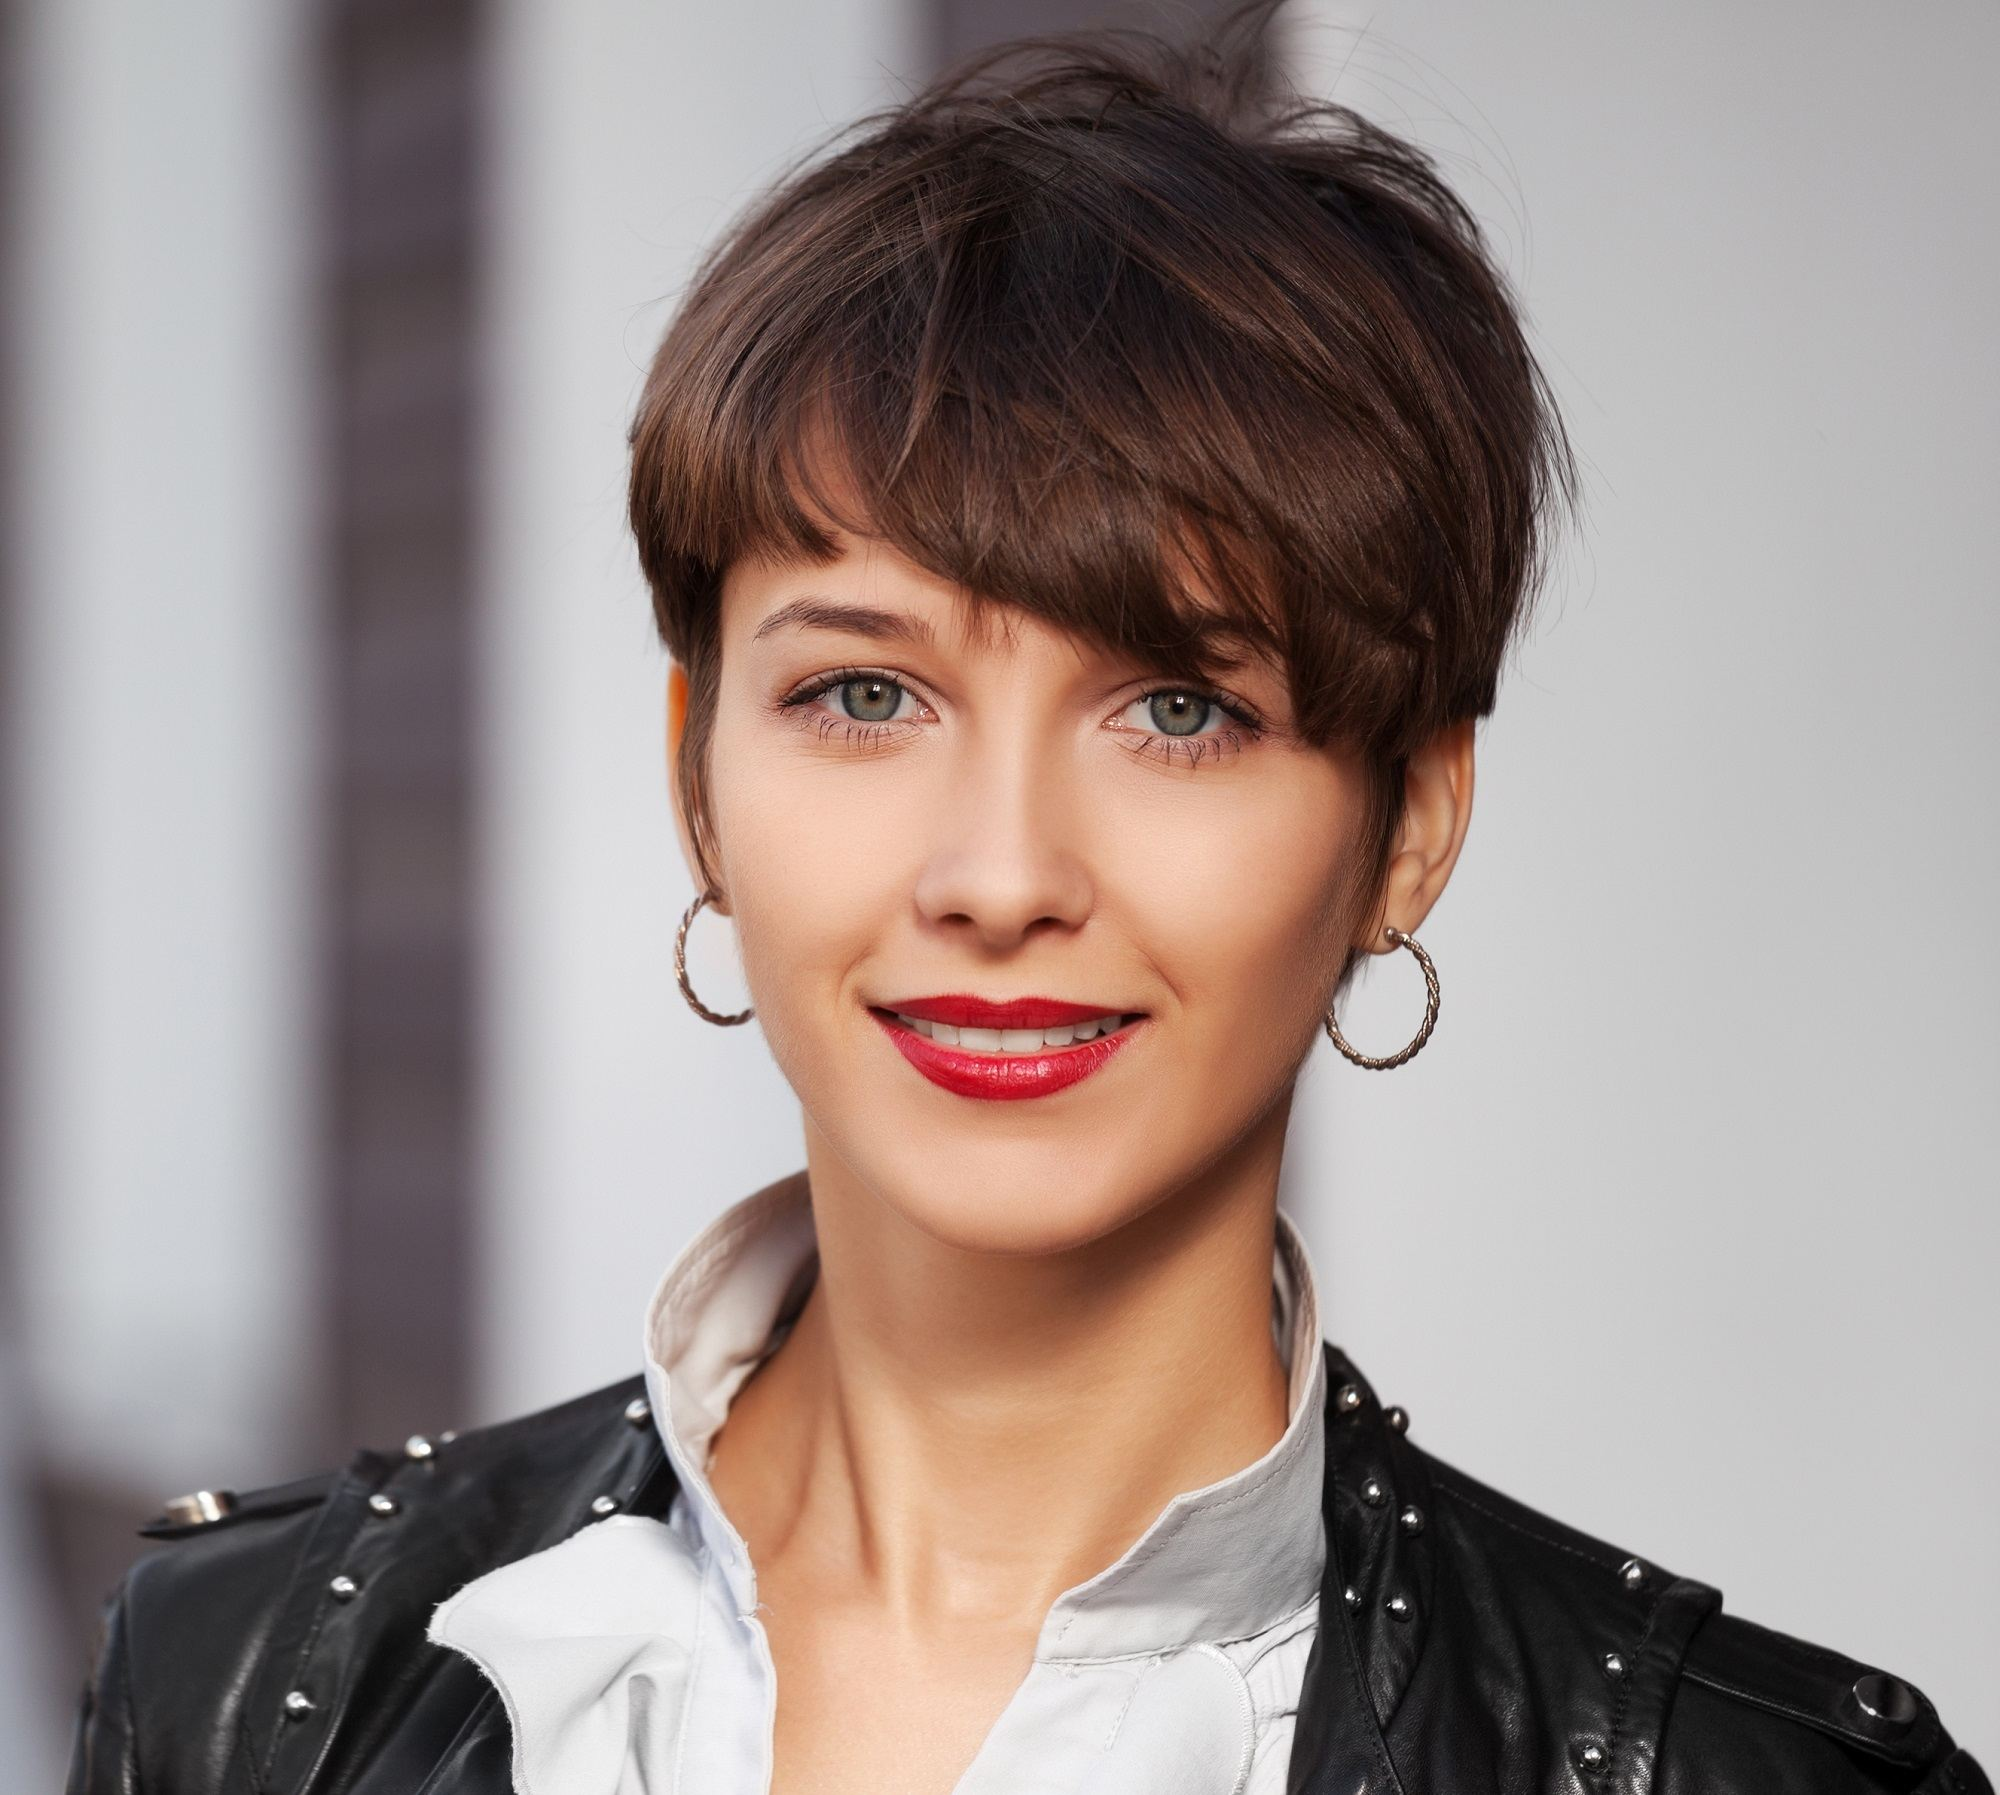 Haircuts for wavy hair: Closeup shot of a woman with brown pixie cut wearing a black jacket outdoors